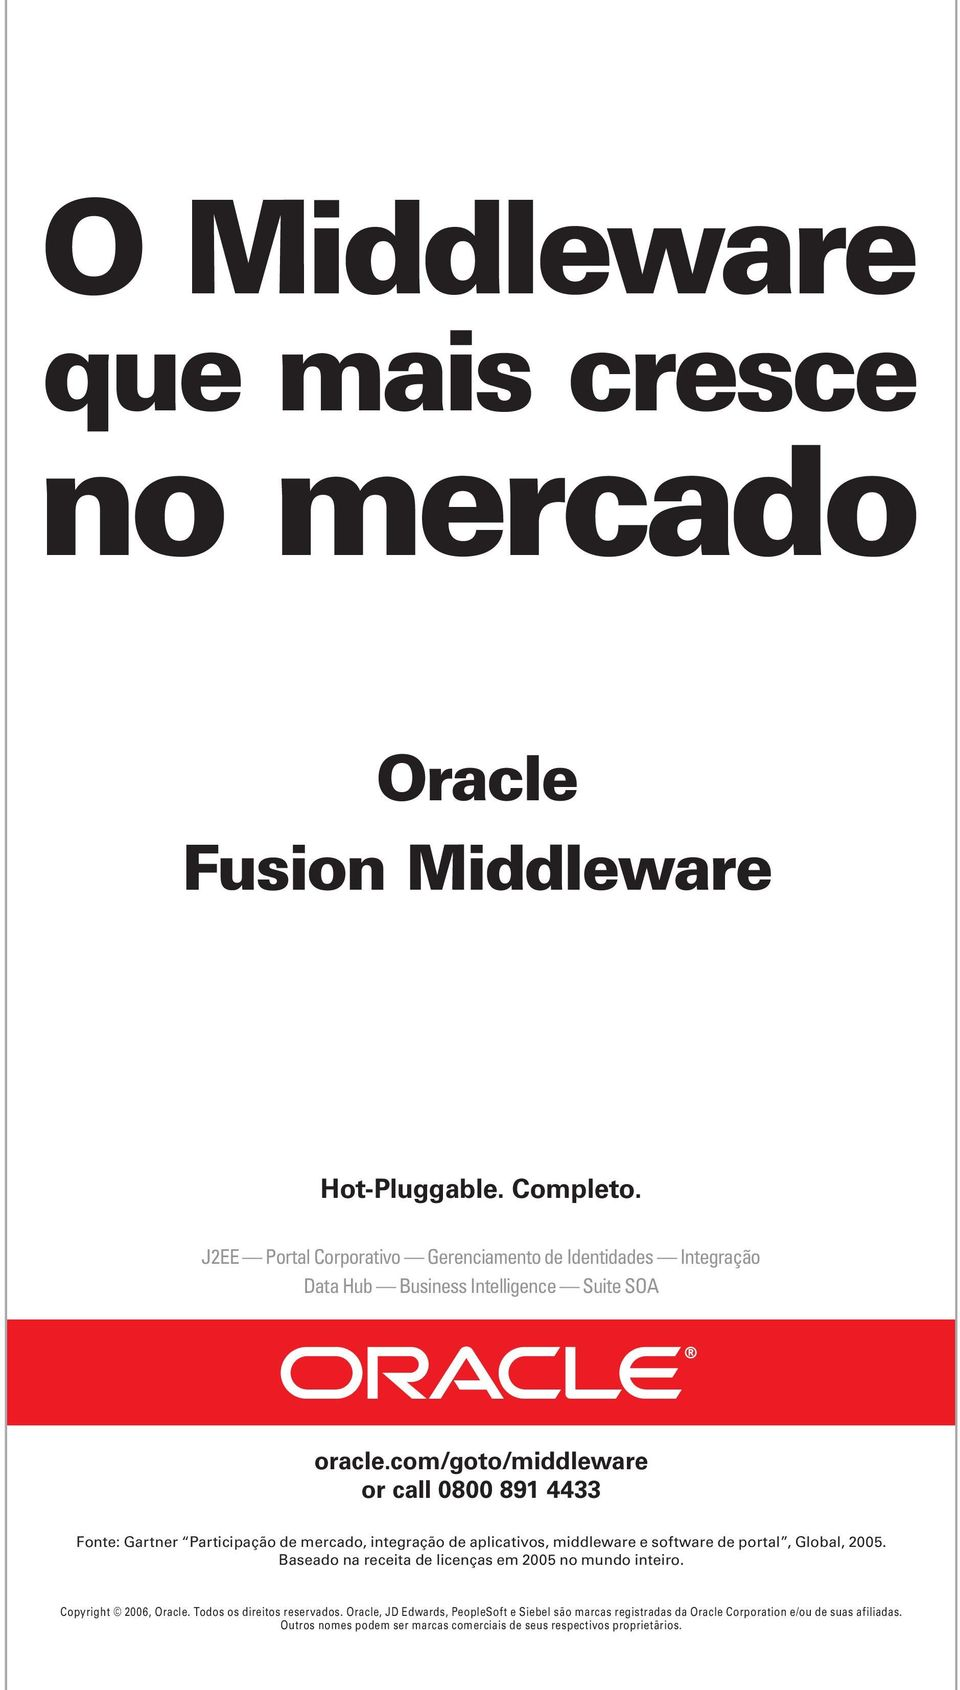 com/goto/middleware or call 0800 891 4433 Fonte: Gartner Participação de mercado, integração de aplicativos, middleware e software de portal, Global, 2005.